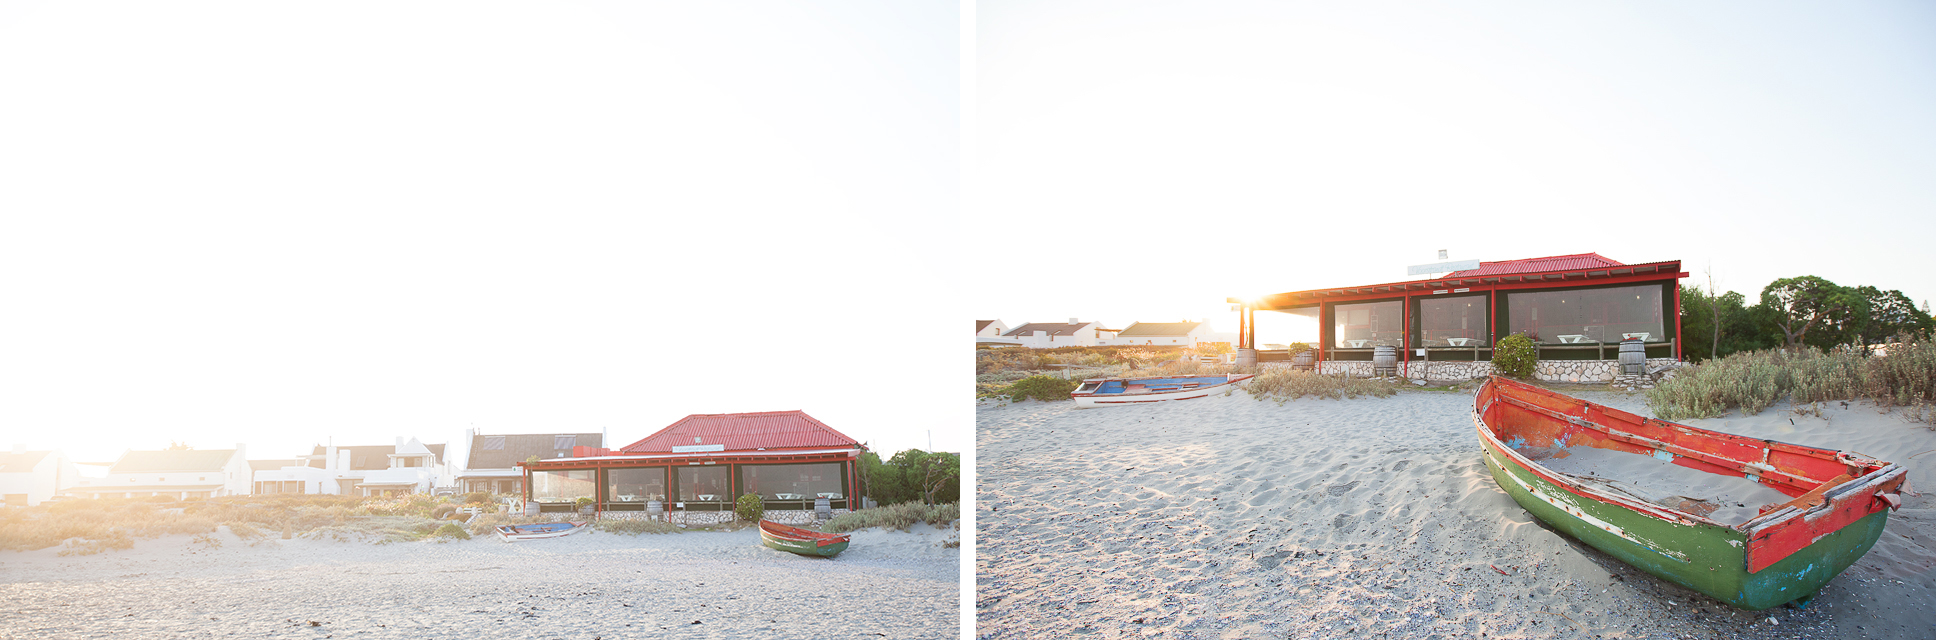 The Voorstrand Restaurant, Paternoster. The photo was taken at sunrise.